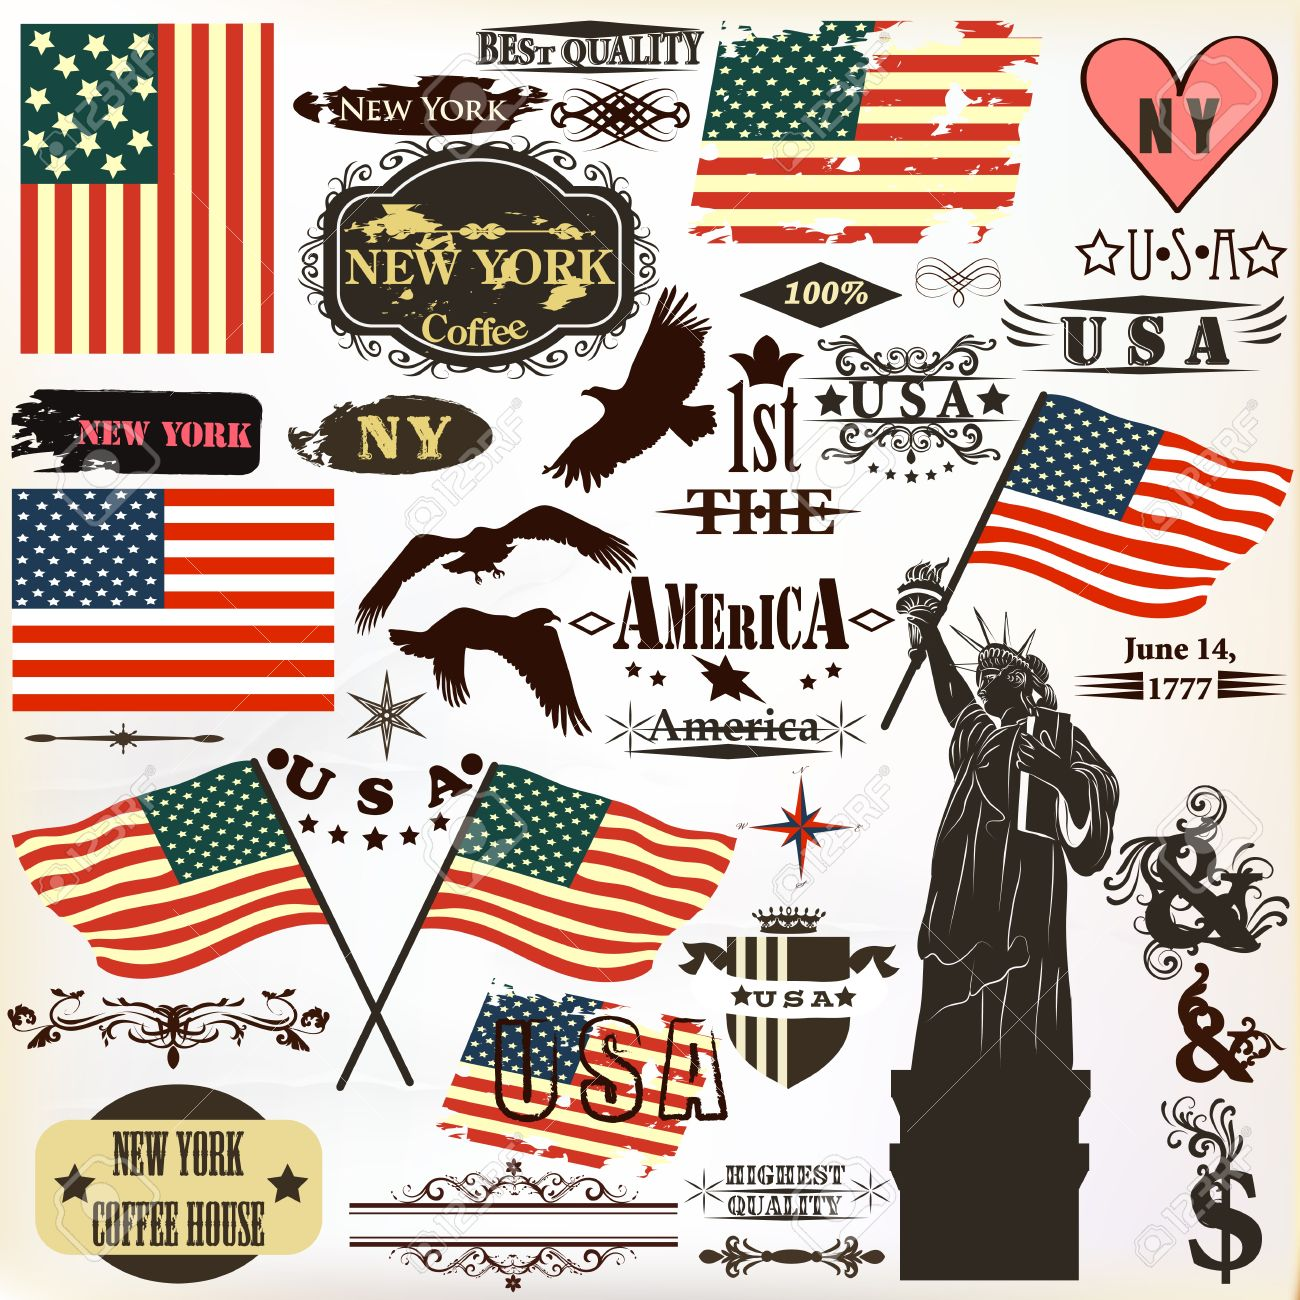 Cool united states symbols clipart library vector set of vintage elements united states symbols for rh 123rf com clip art united states symbols united states symbols and meanings buycottarizona